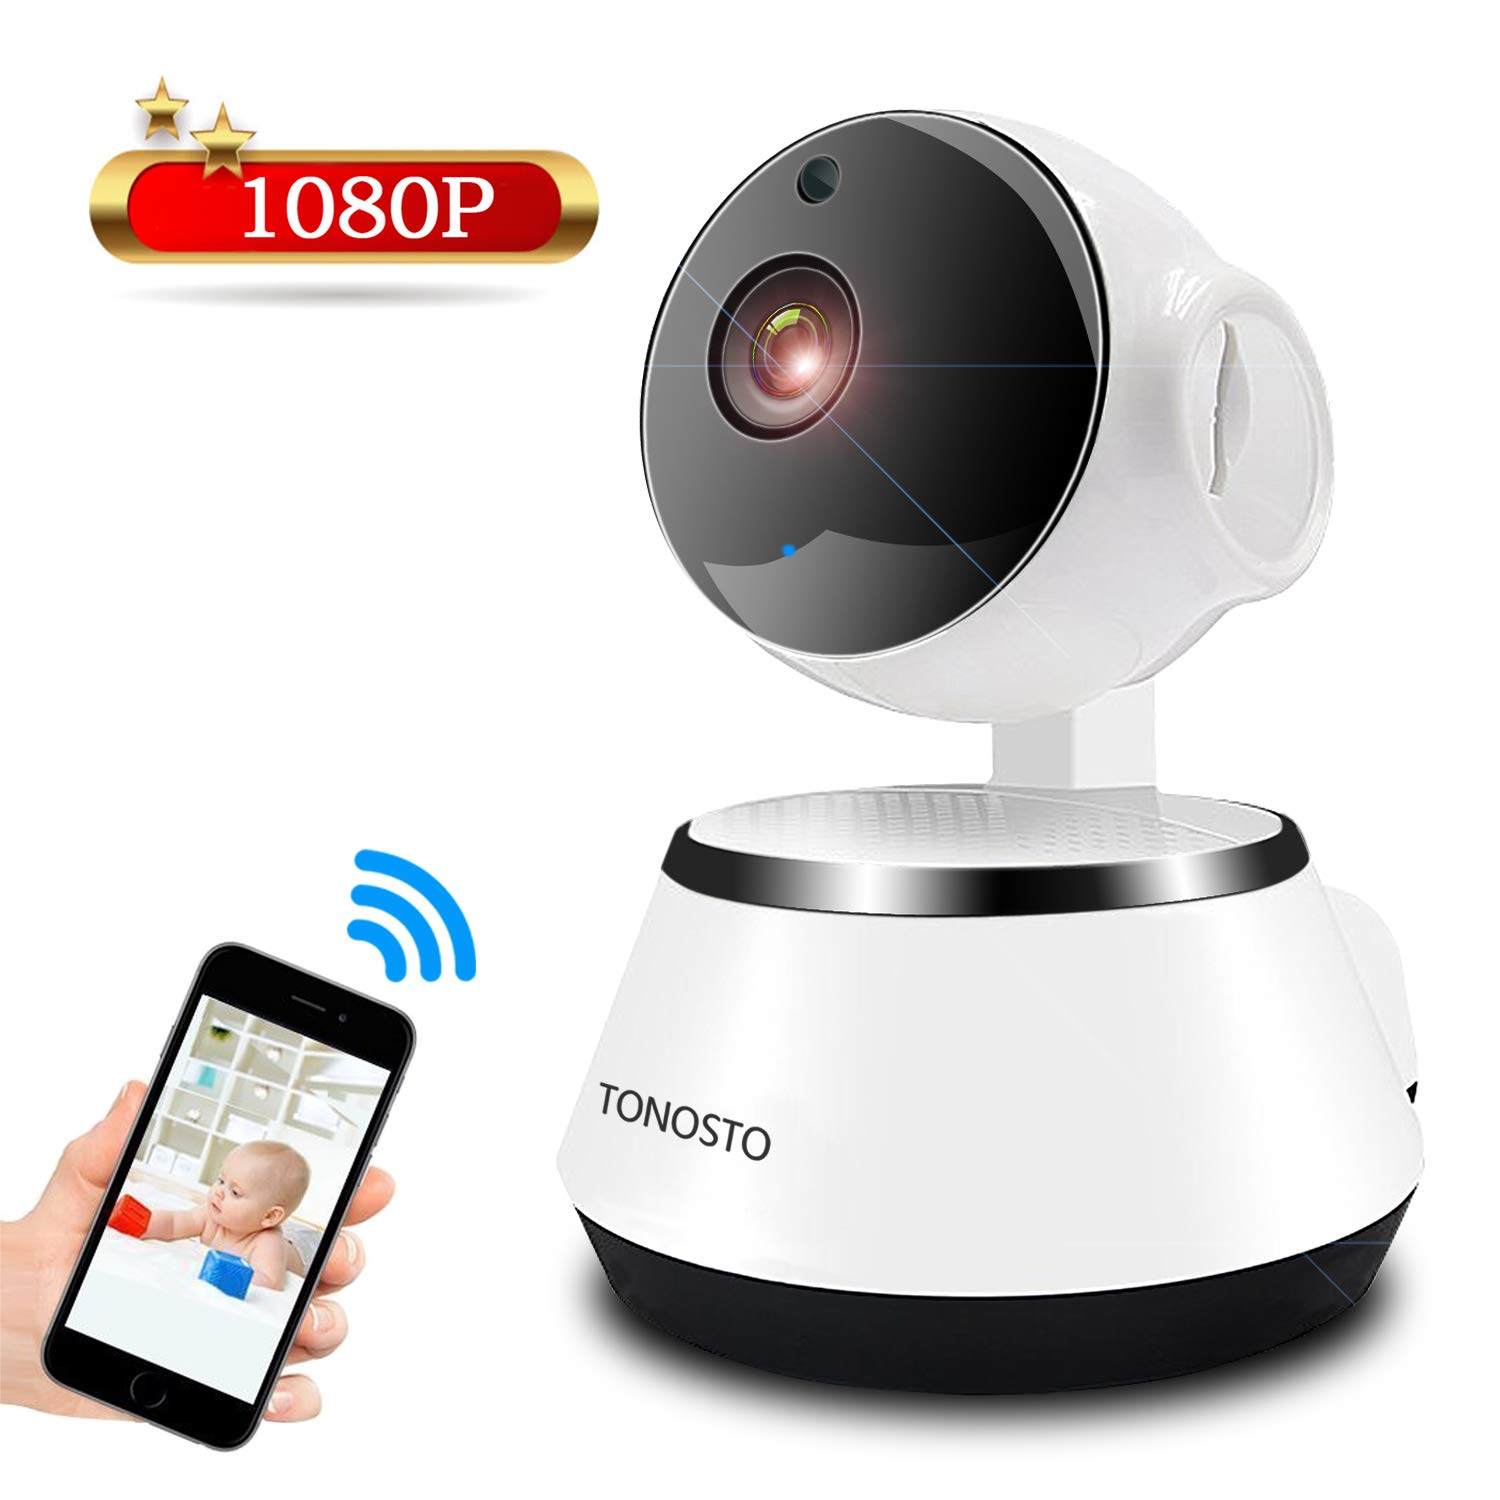 Baby Monitor, TONSTO 1080P HD Wireless Indoor Surveillance Camera Nanny Cam with 2 Way Audio Night Vision Motion Tracking High Pixel WiFi Camera Auto-Cruise, Monitor Remote by Android and iPhon easily